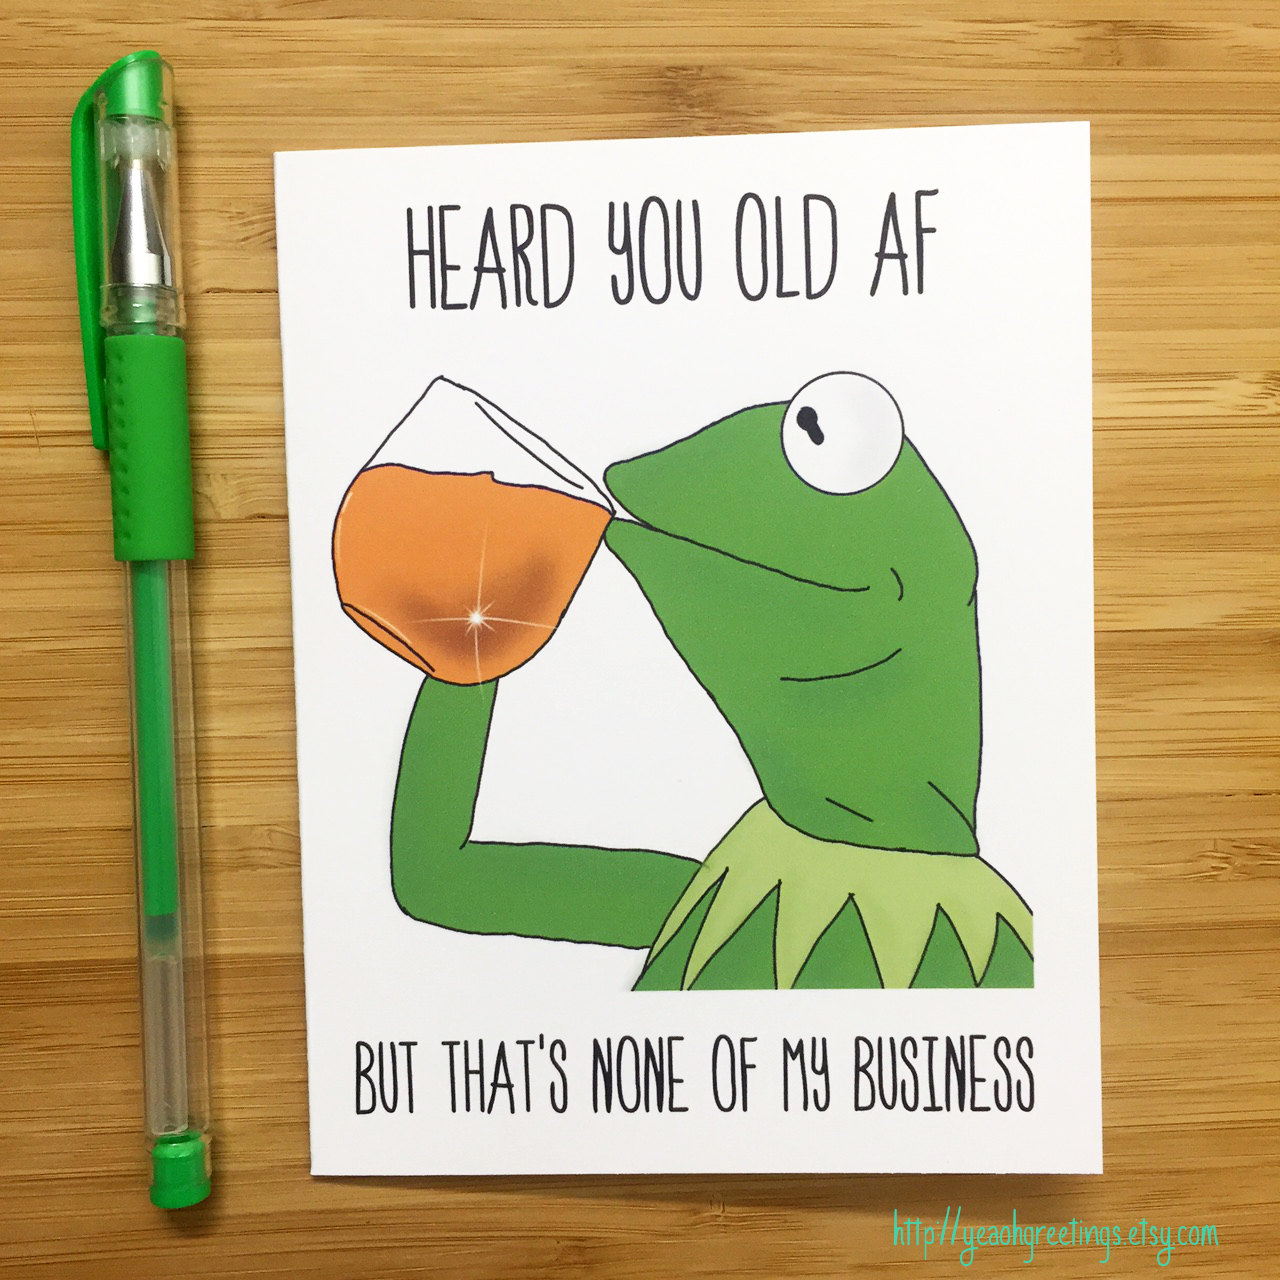 birthday greeting images funny ; Birthday-Cards-Funny-with-amazing-appearance-for-amazing-Birthday-card-design-ideas-11